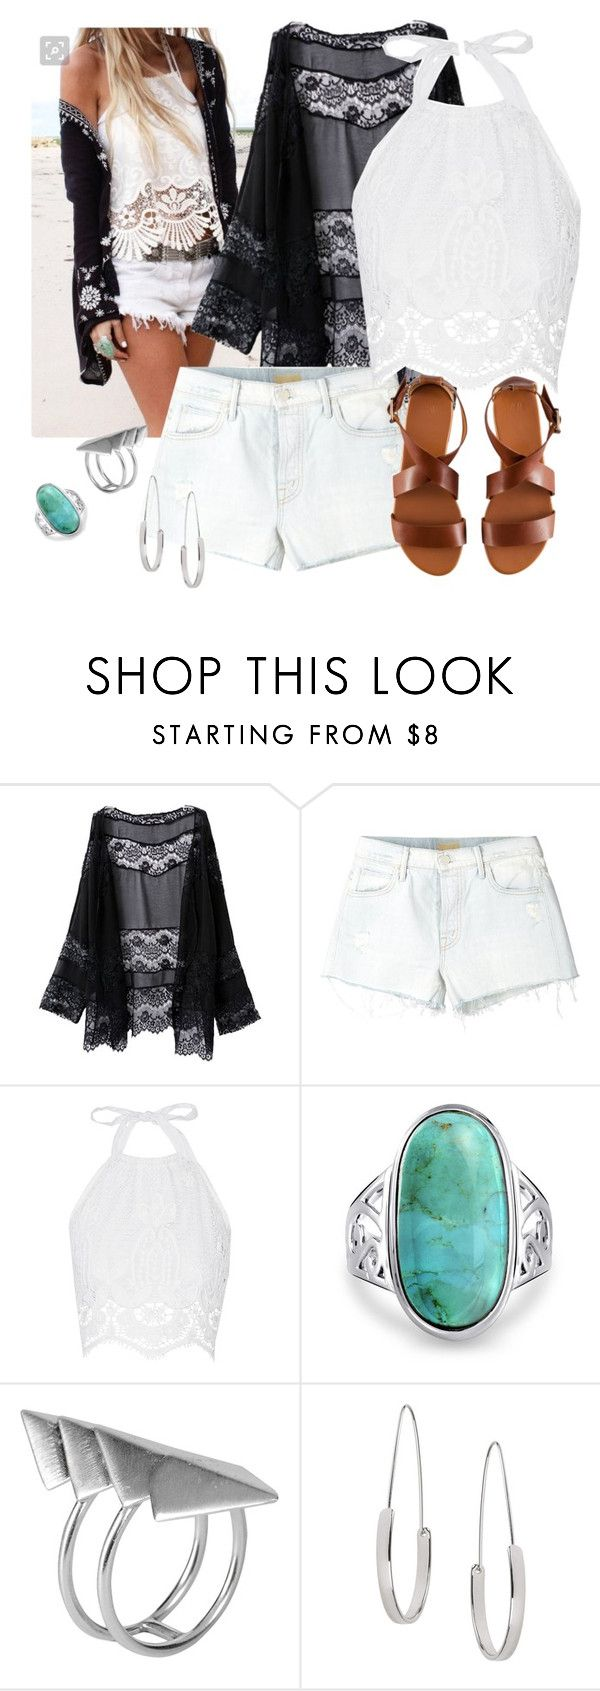 """""""Sem título #483"""" by dolcevita12 ❤ liked on Polyvore featuring Mother, Miguelina, Bling Jewelry, First People First, Topshop and H&M"""